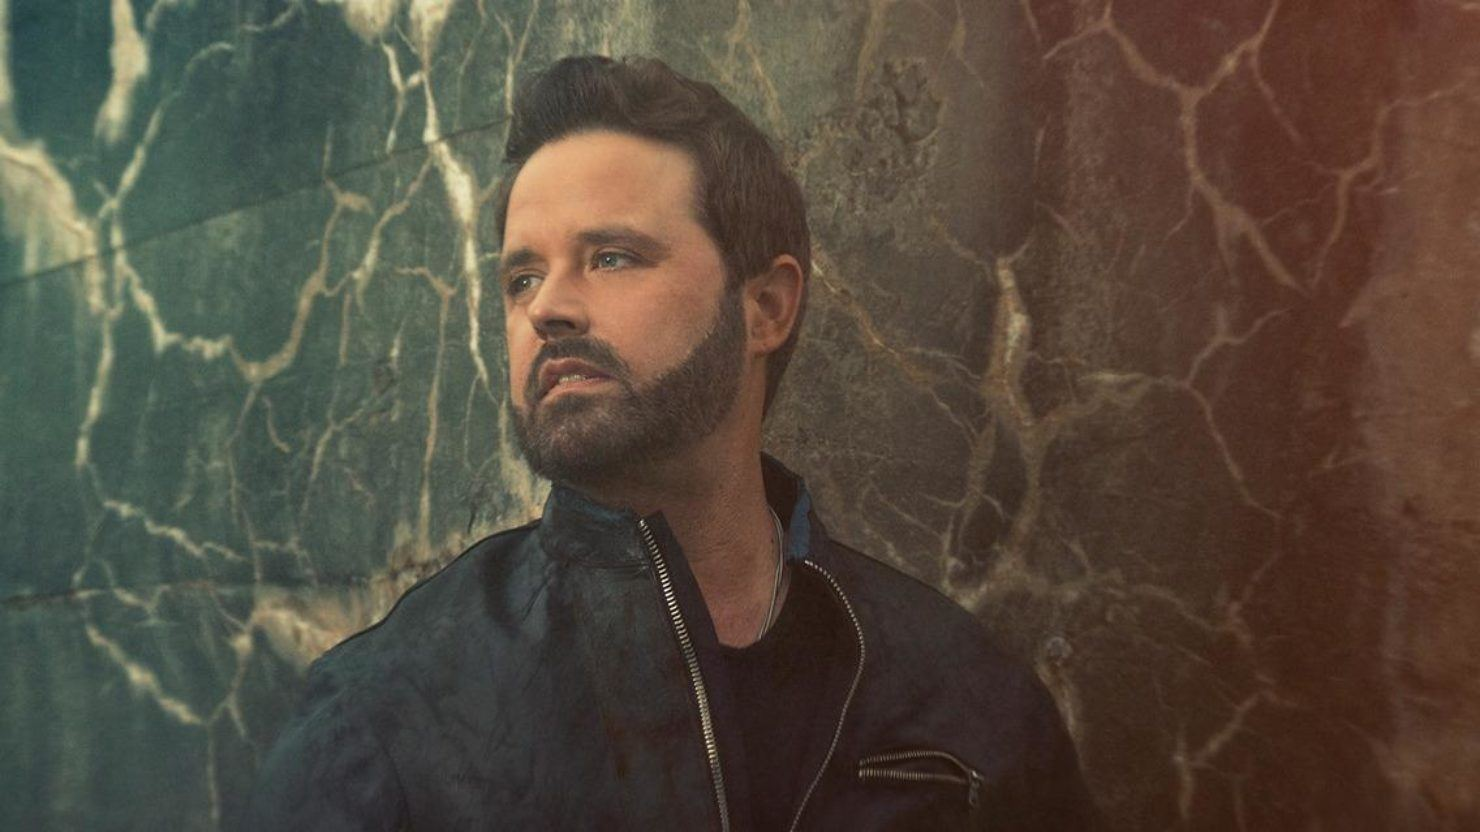 Randy Houser Tour Dates And Concert Tickets